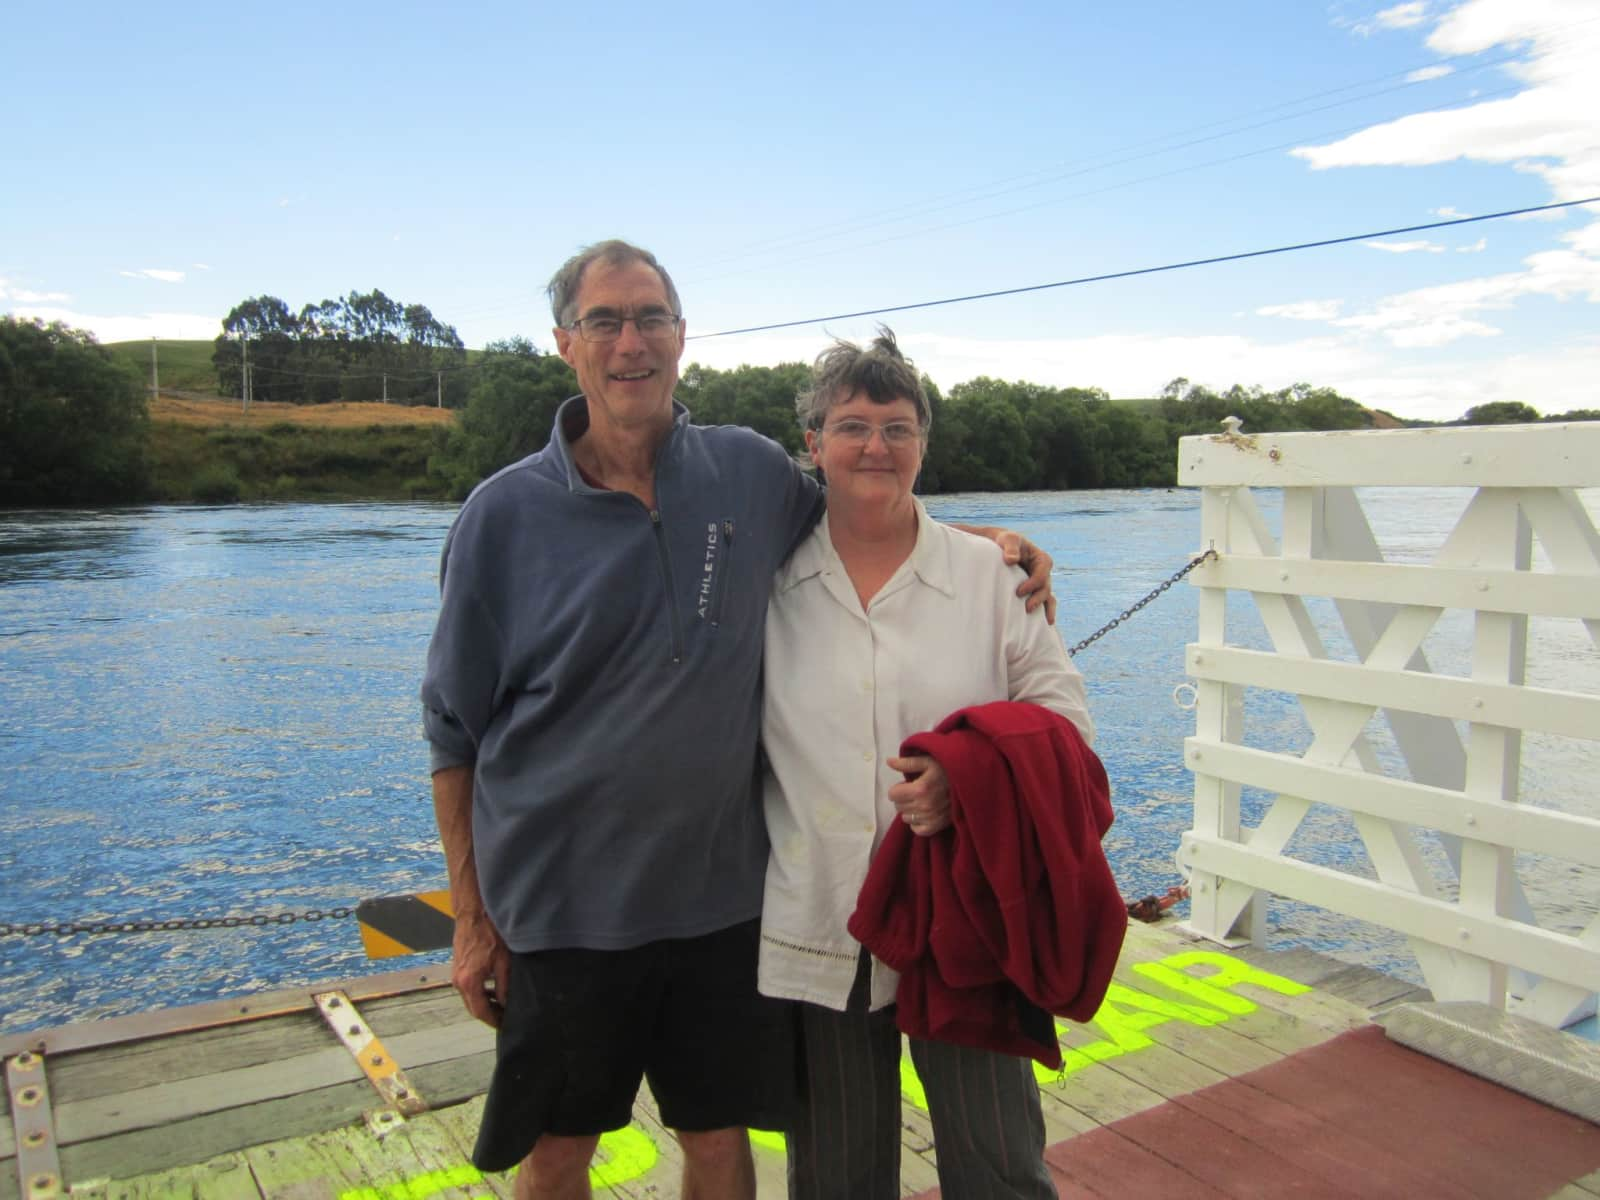 Colin & Vivienne from Dunedin, New Zealand